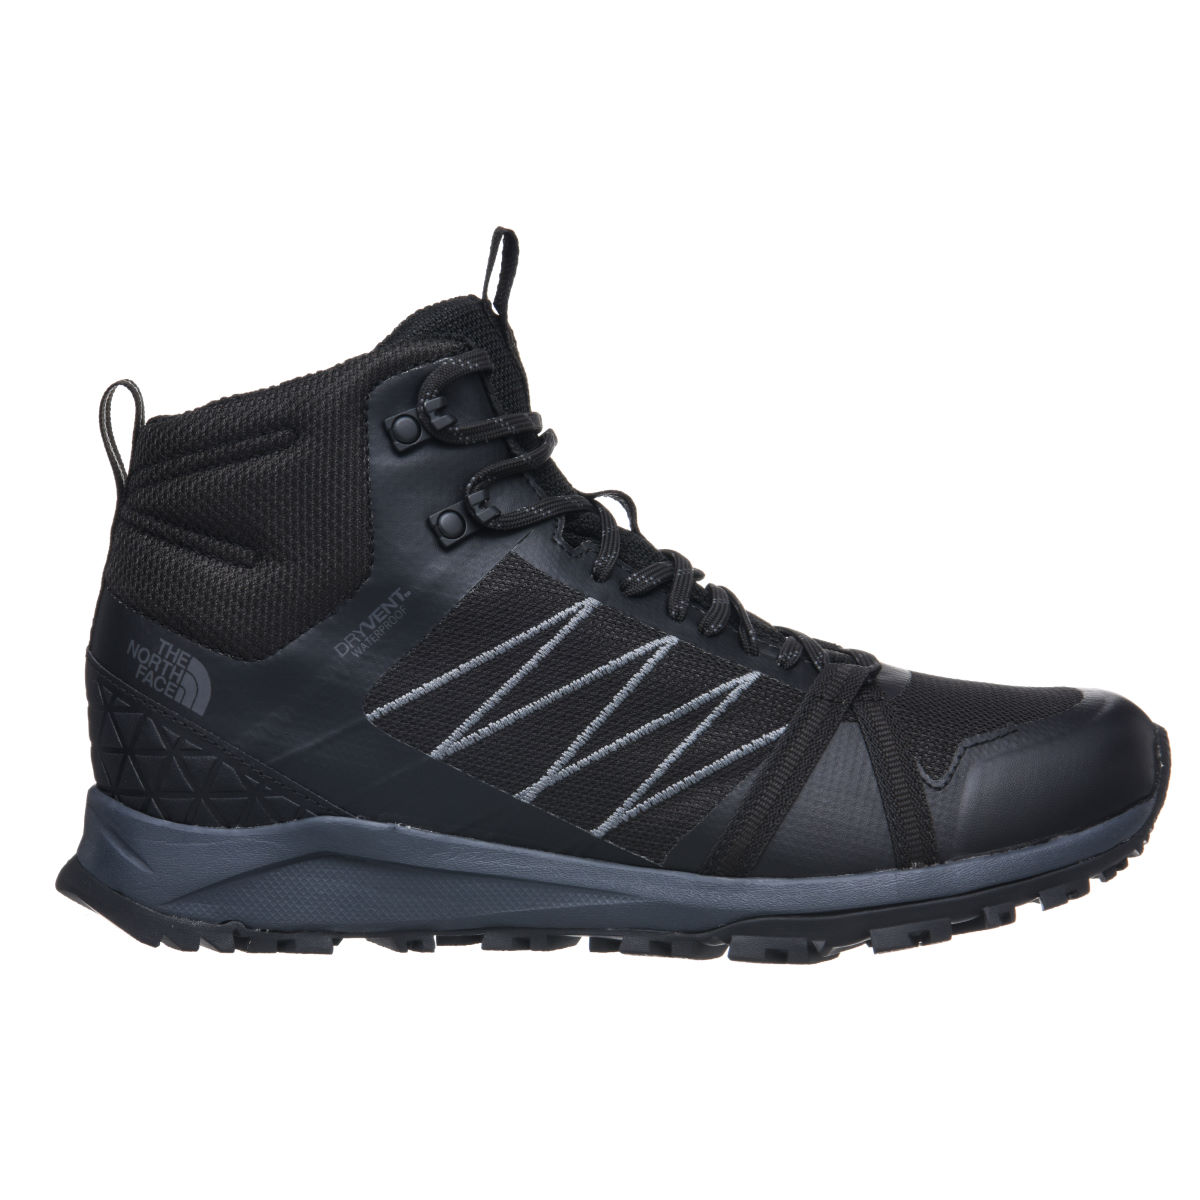 The North Face The North Face Litewave Fastpack II Mid Waterproof Shoes   Shoes